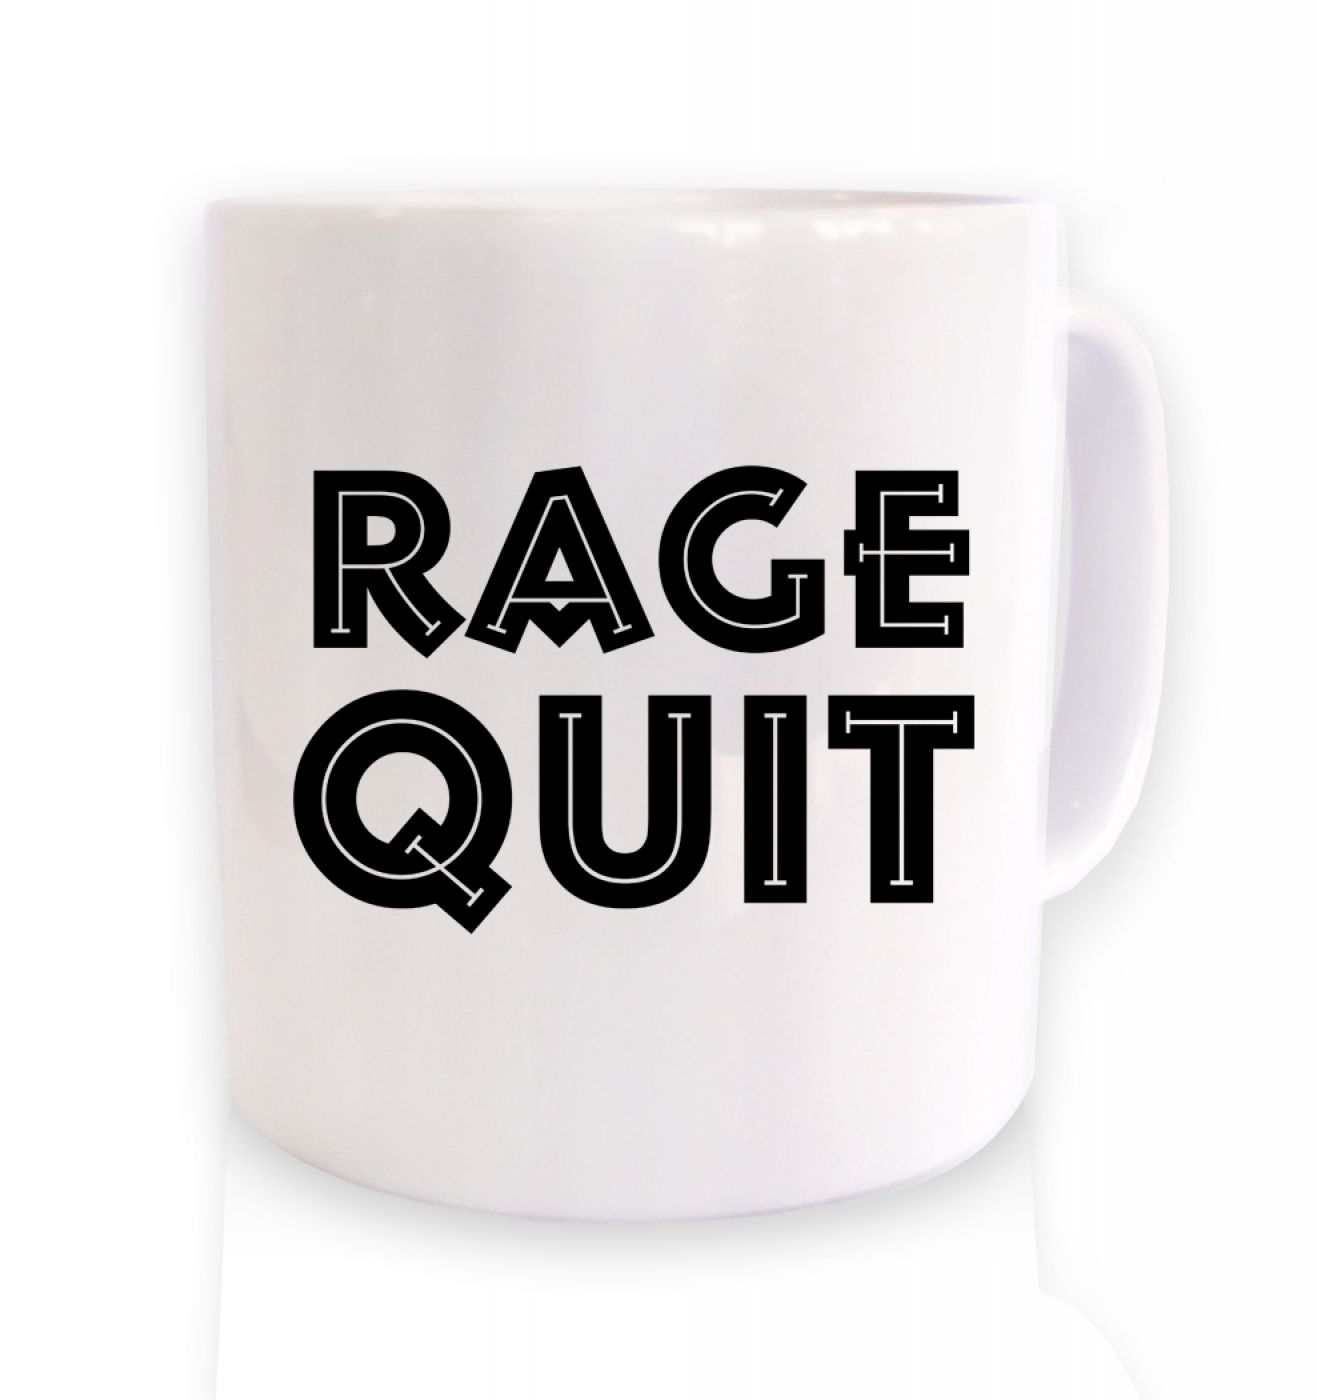 Rage Quit coffee ceramic coffee mug